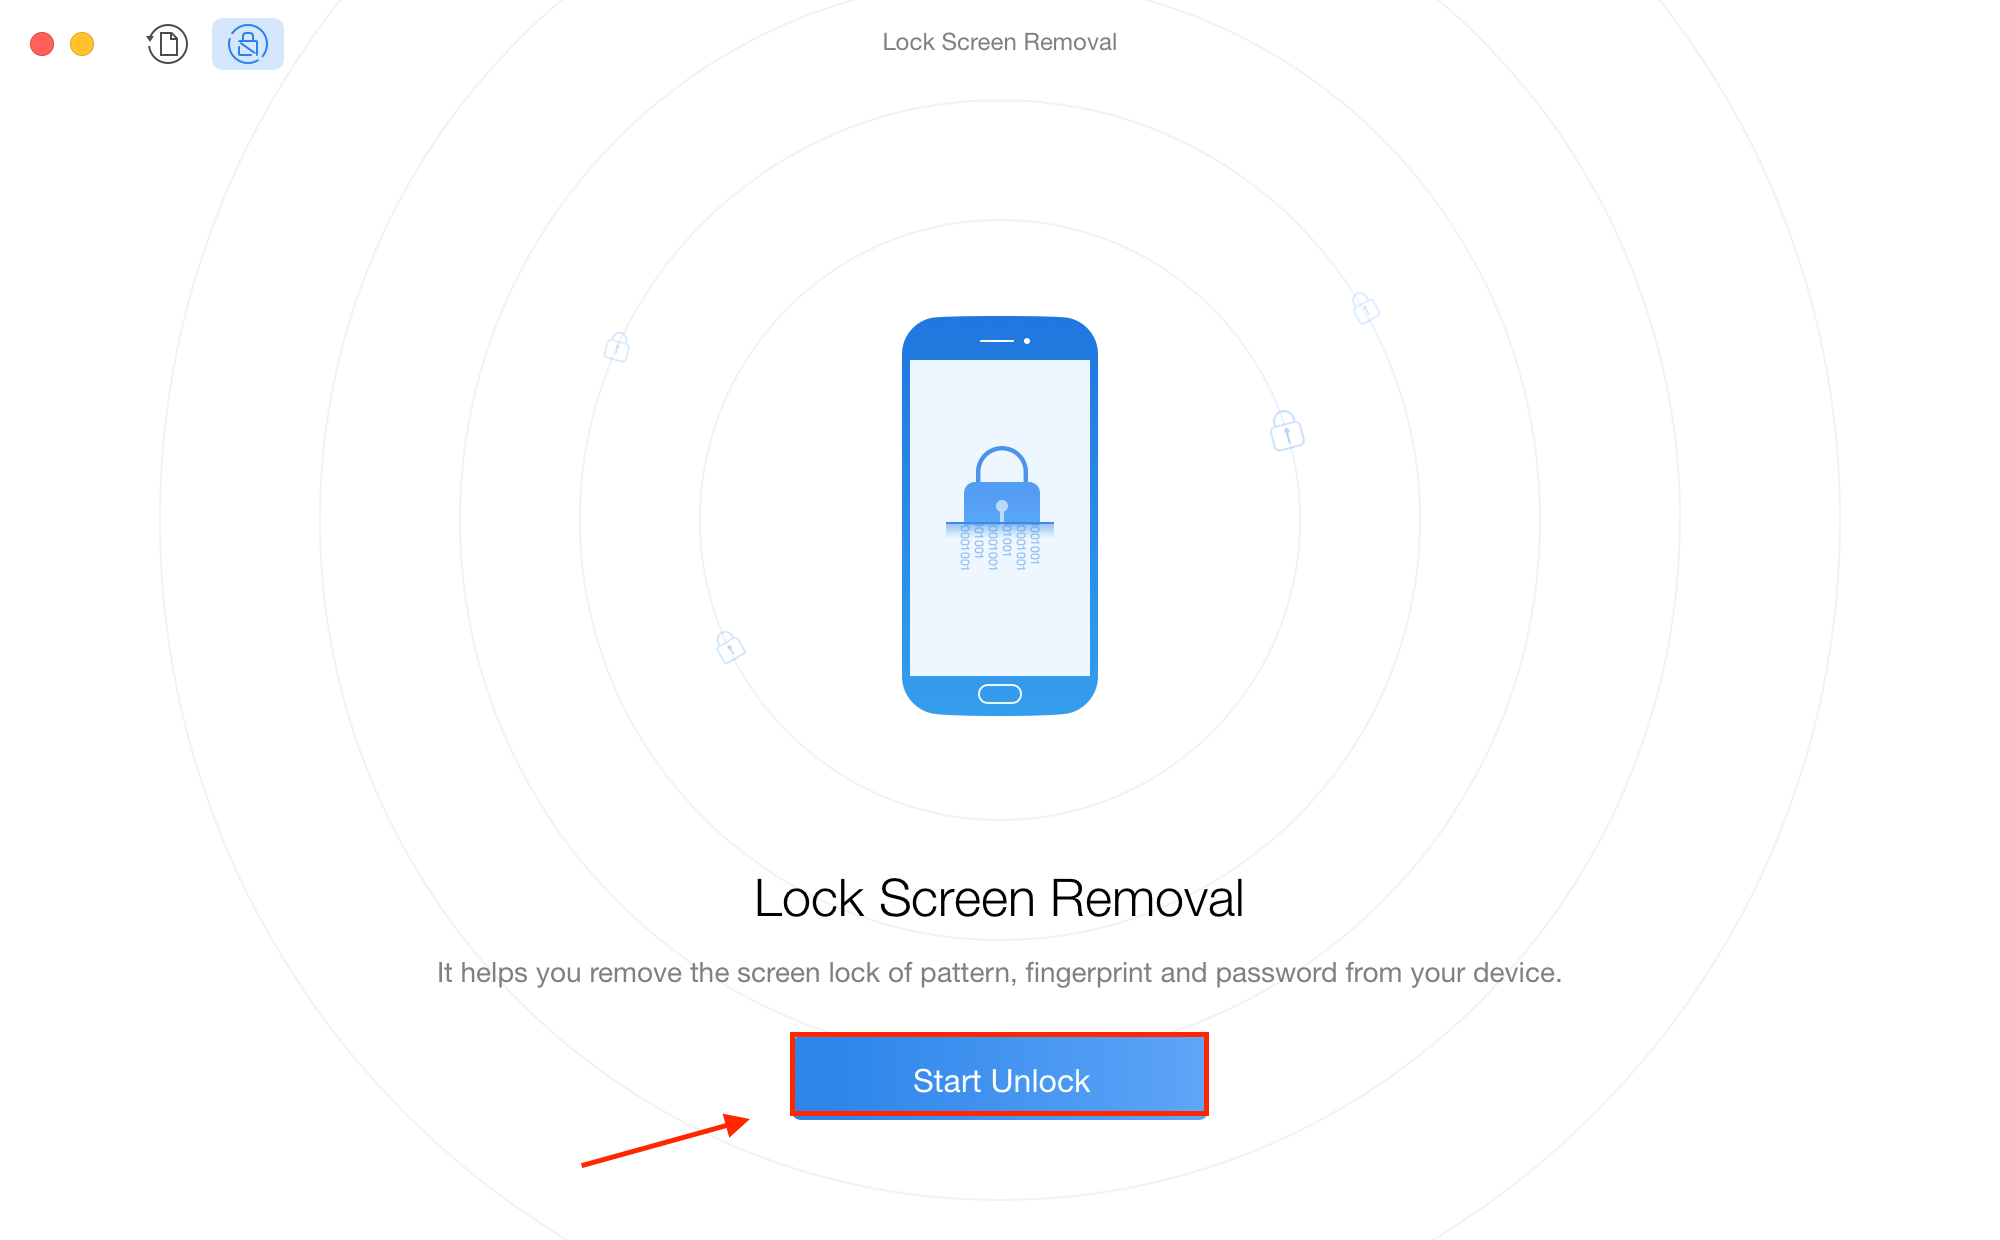 How to Unlock Samsung Phone If Forgot Pattern with 3 Methods